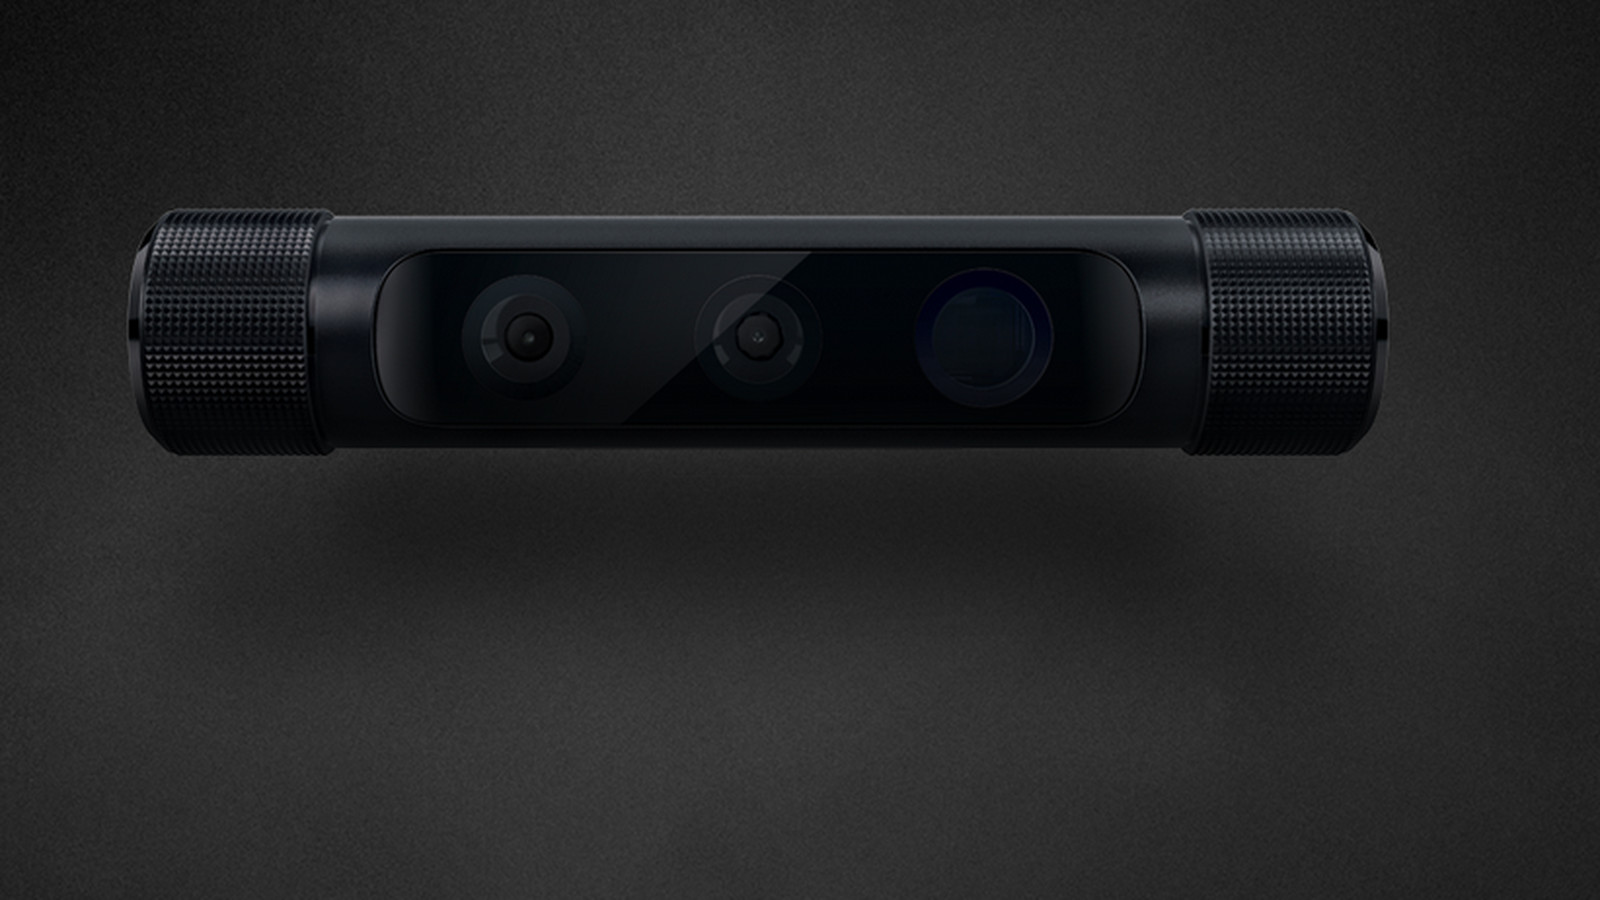 The Razer Stargazer Is Competing Against Green Screens Not Other Webcams Polygon